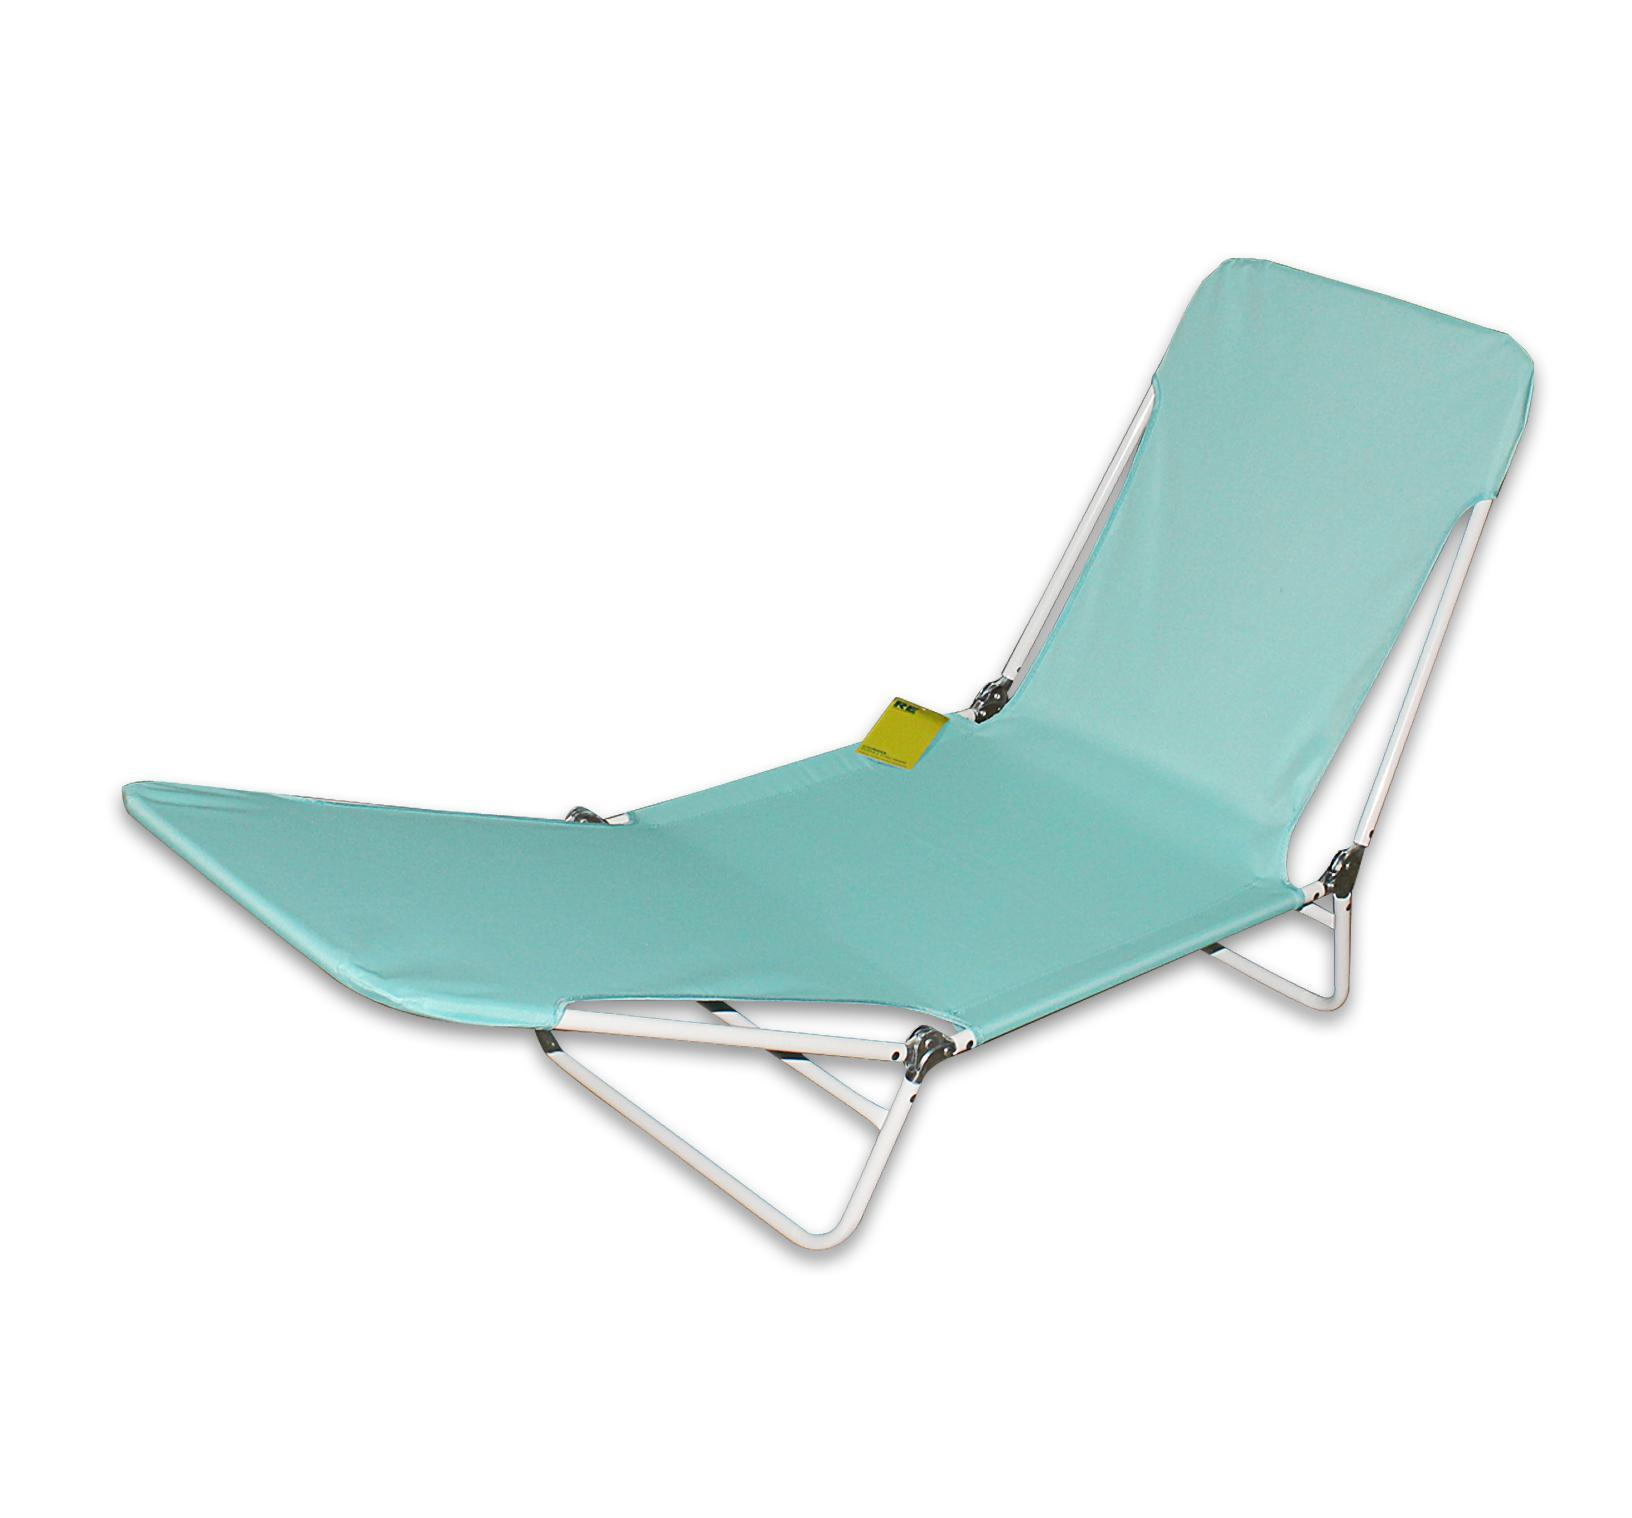 Sunbathing Chairs Beach Pool Chair Outside Lounger Recliner 71 Quotl X 22 Quotw Blue